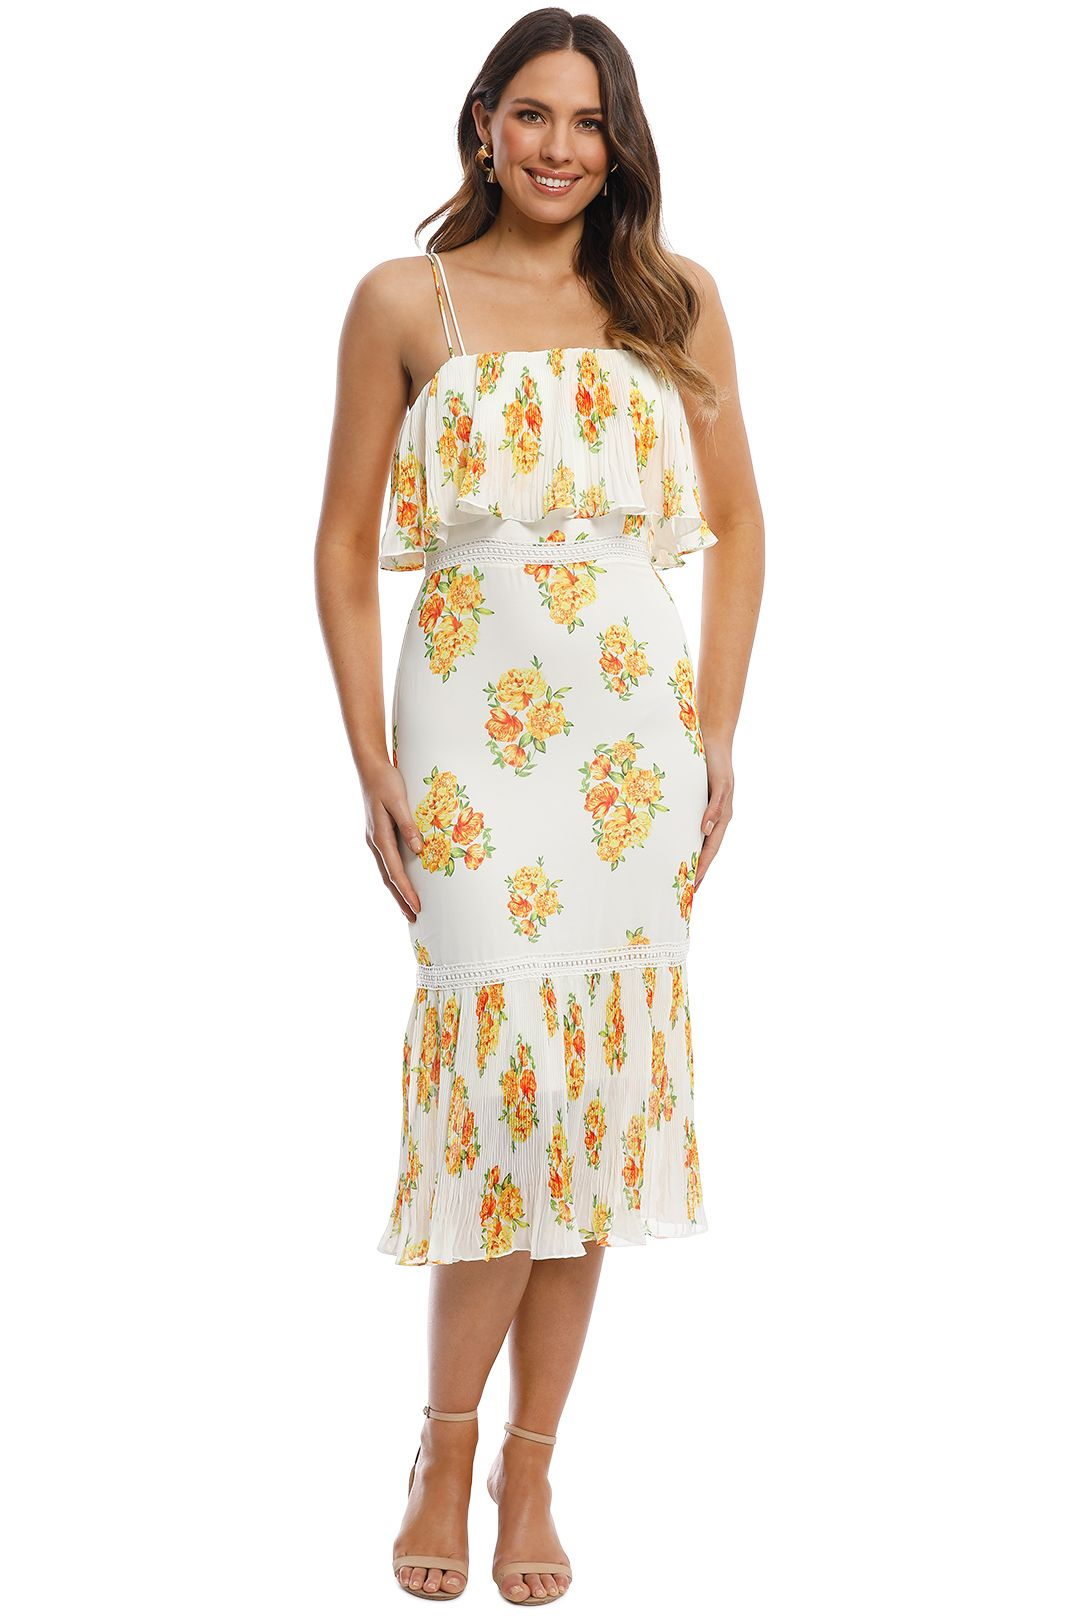 Cooper St - Darjeeling Fitted Layered Dress - Ivory Print - Front